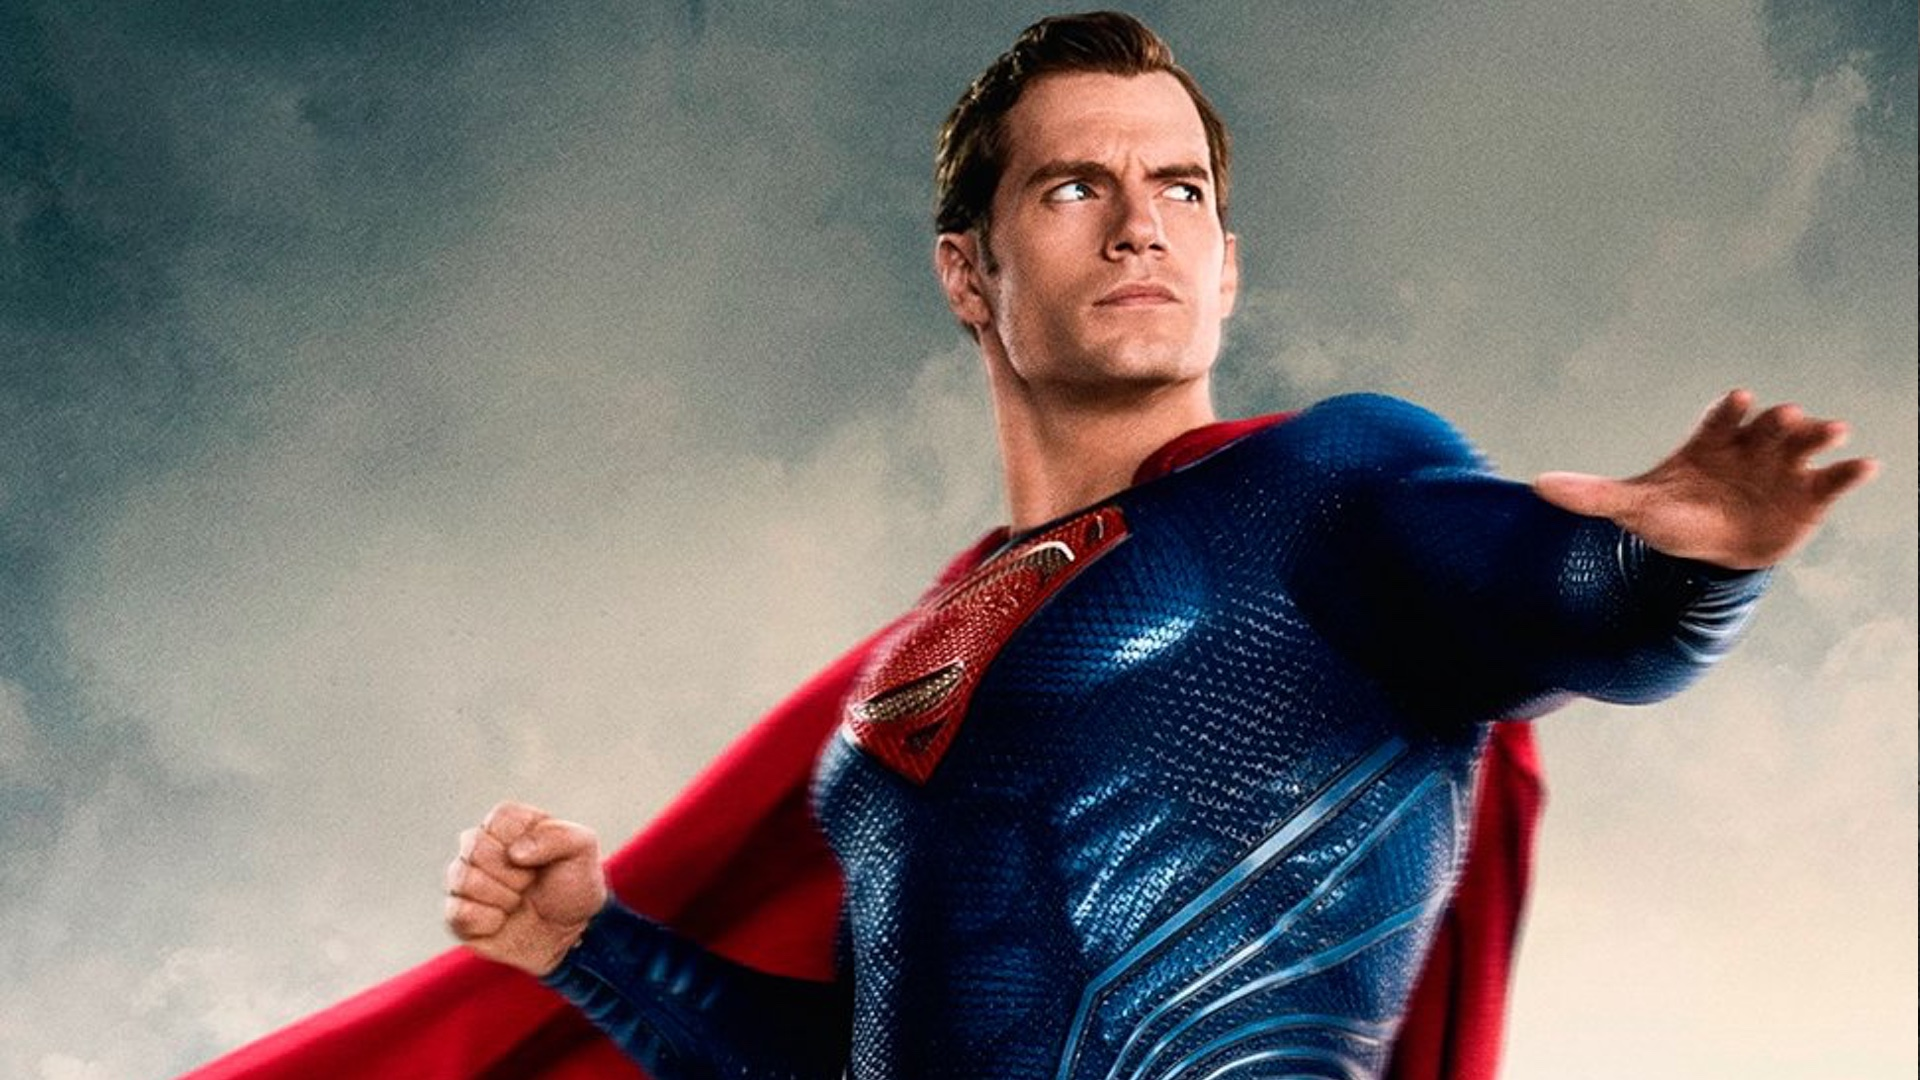 Henry Cavill Still Wants To Play Superman and Make a MAN OF